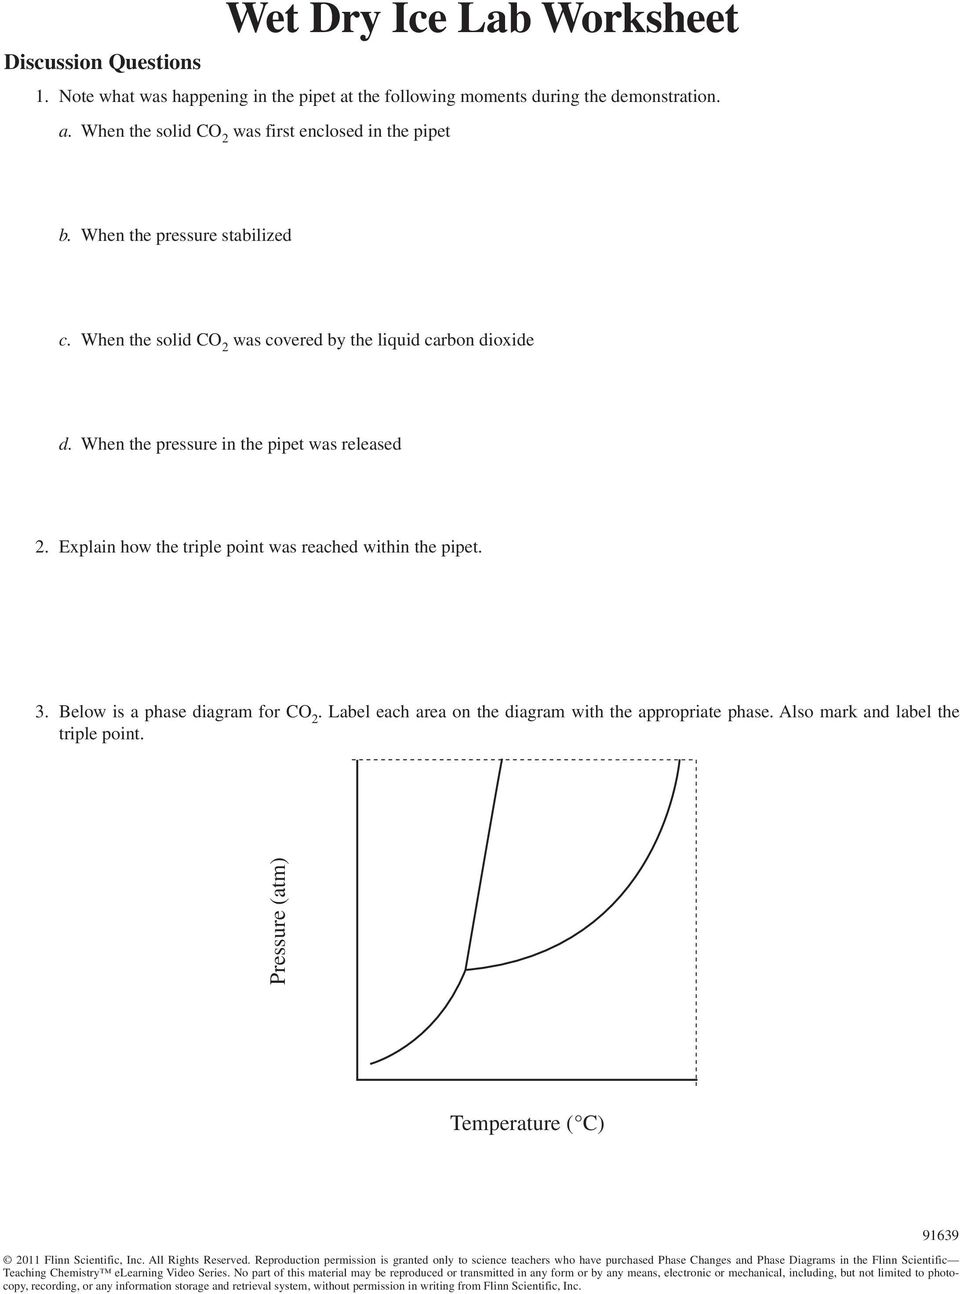 Wet Dry Ice Lab Phase Changes And Phase Diagrams Pdf